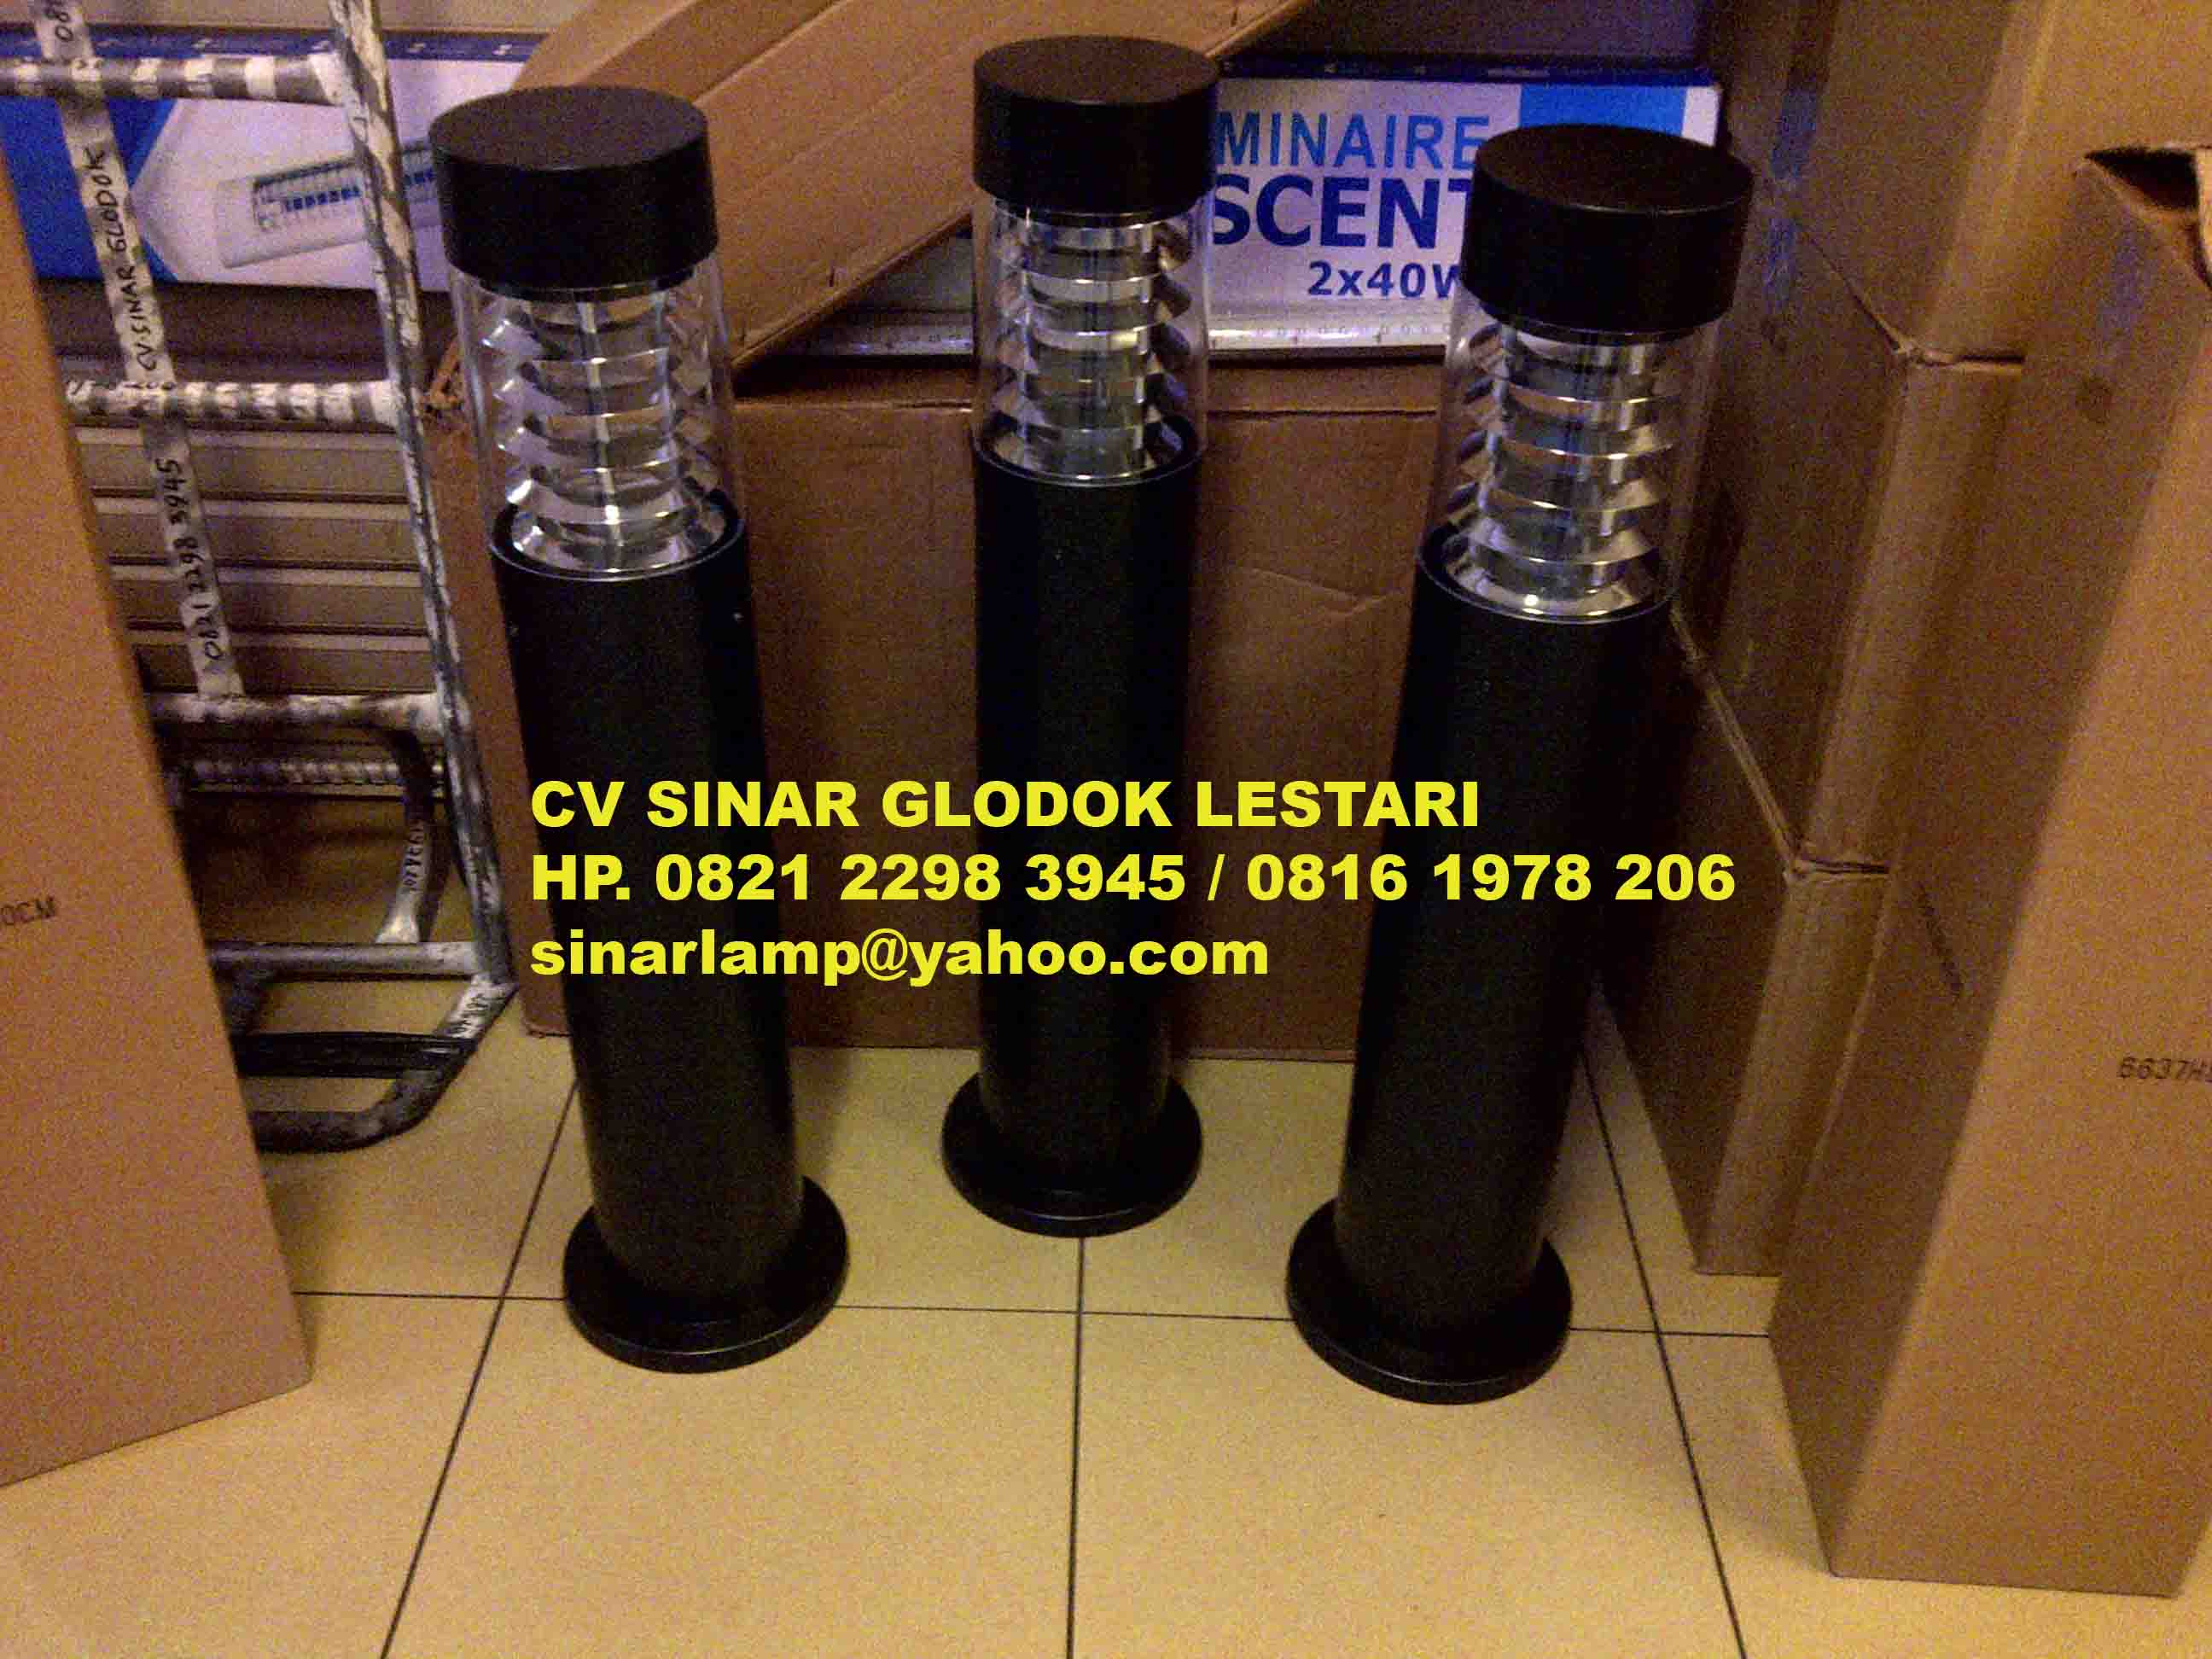 Lampu Taman Dan Lampu Pilar 404 The Requested Product Does Not Exist Results From 30